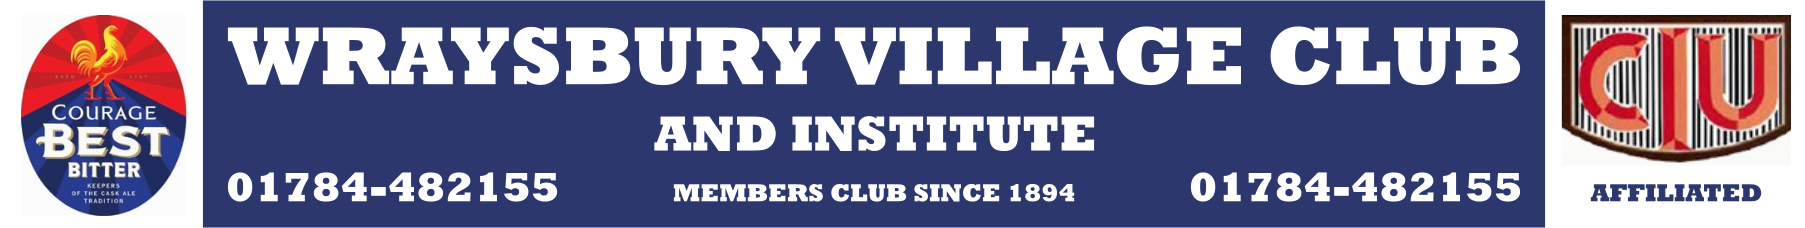 Wraysbury Village Club